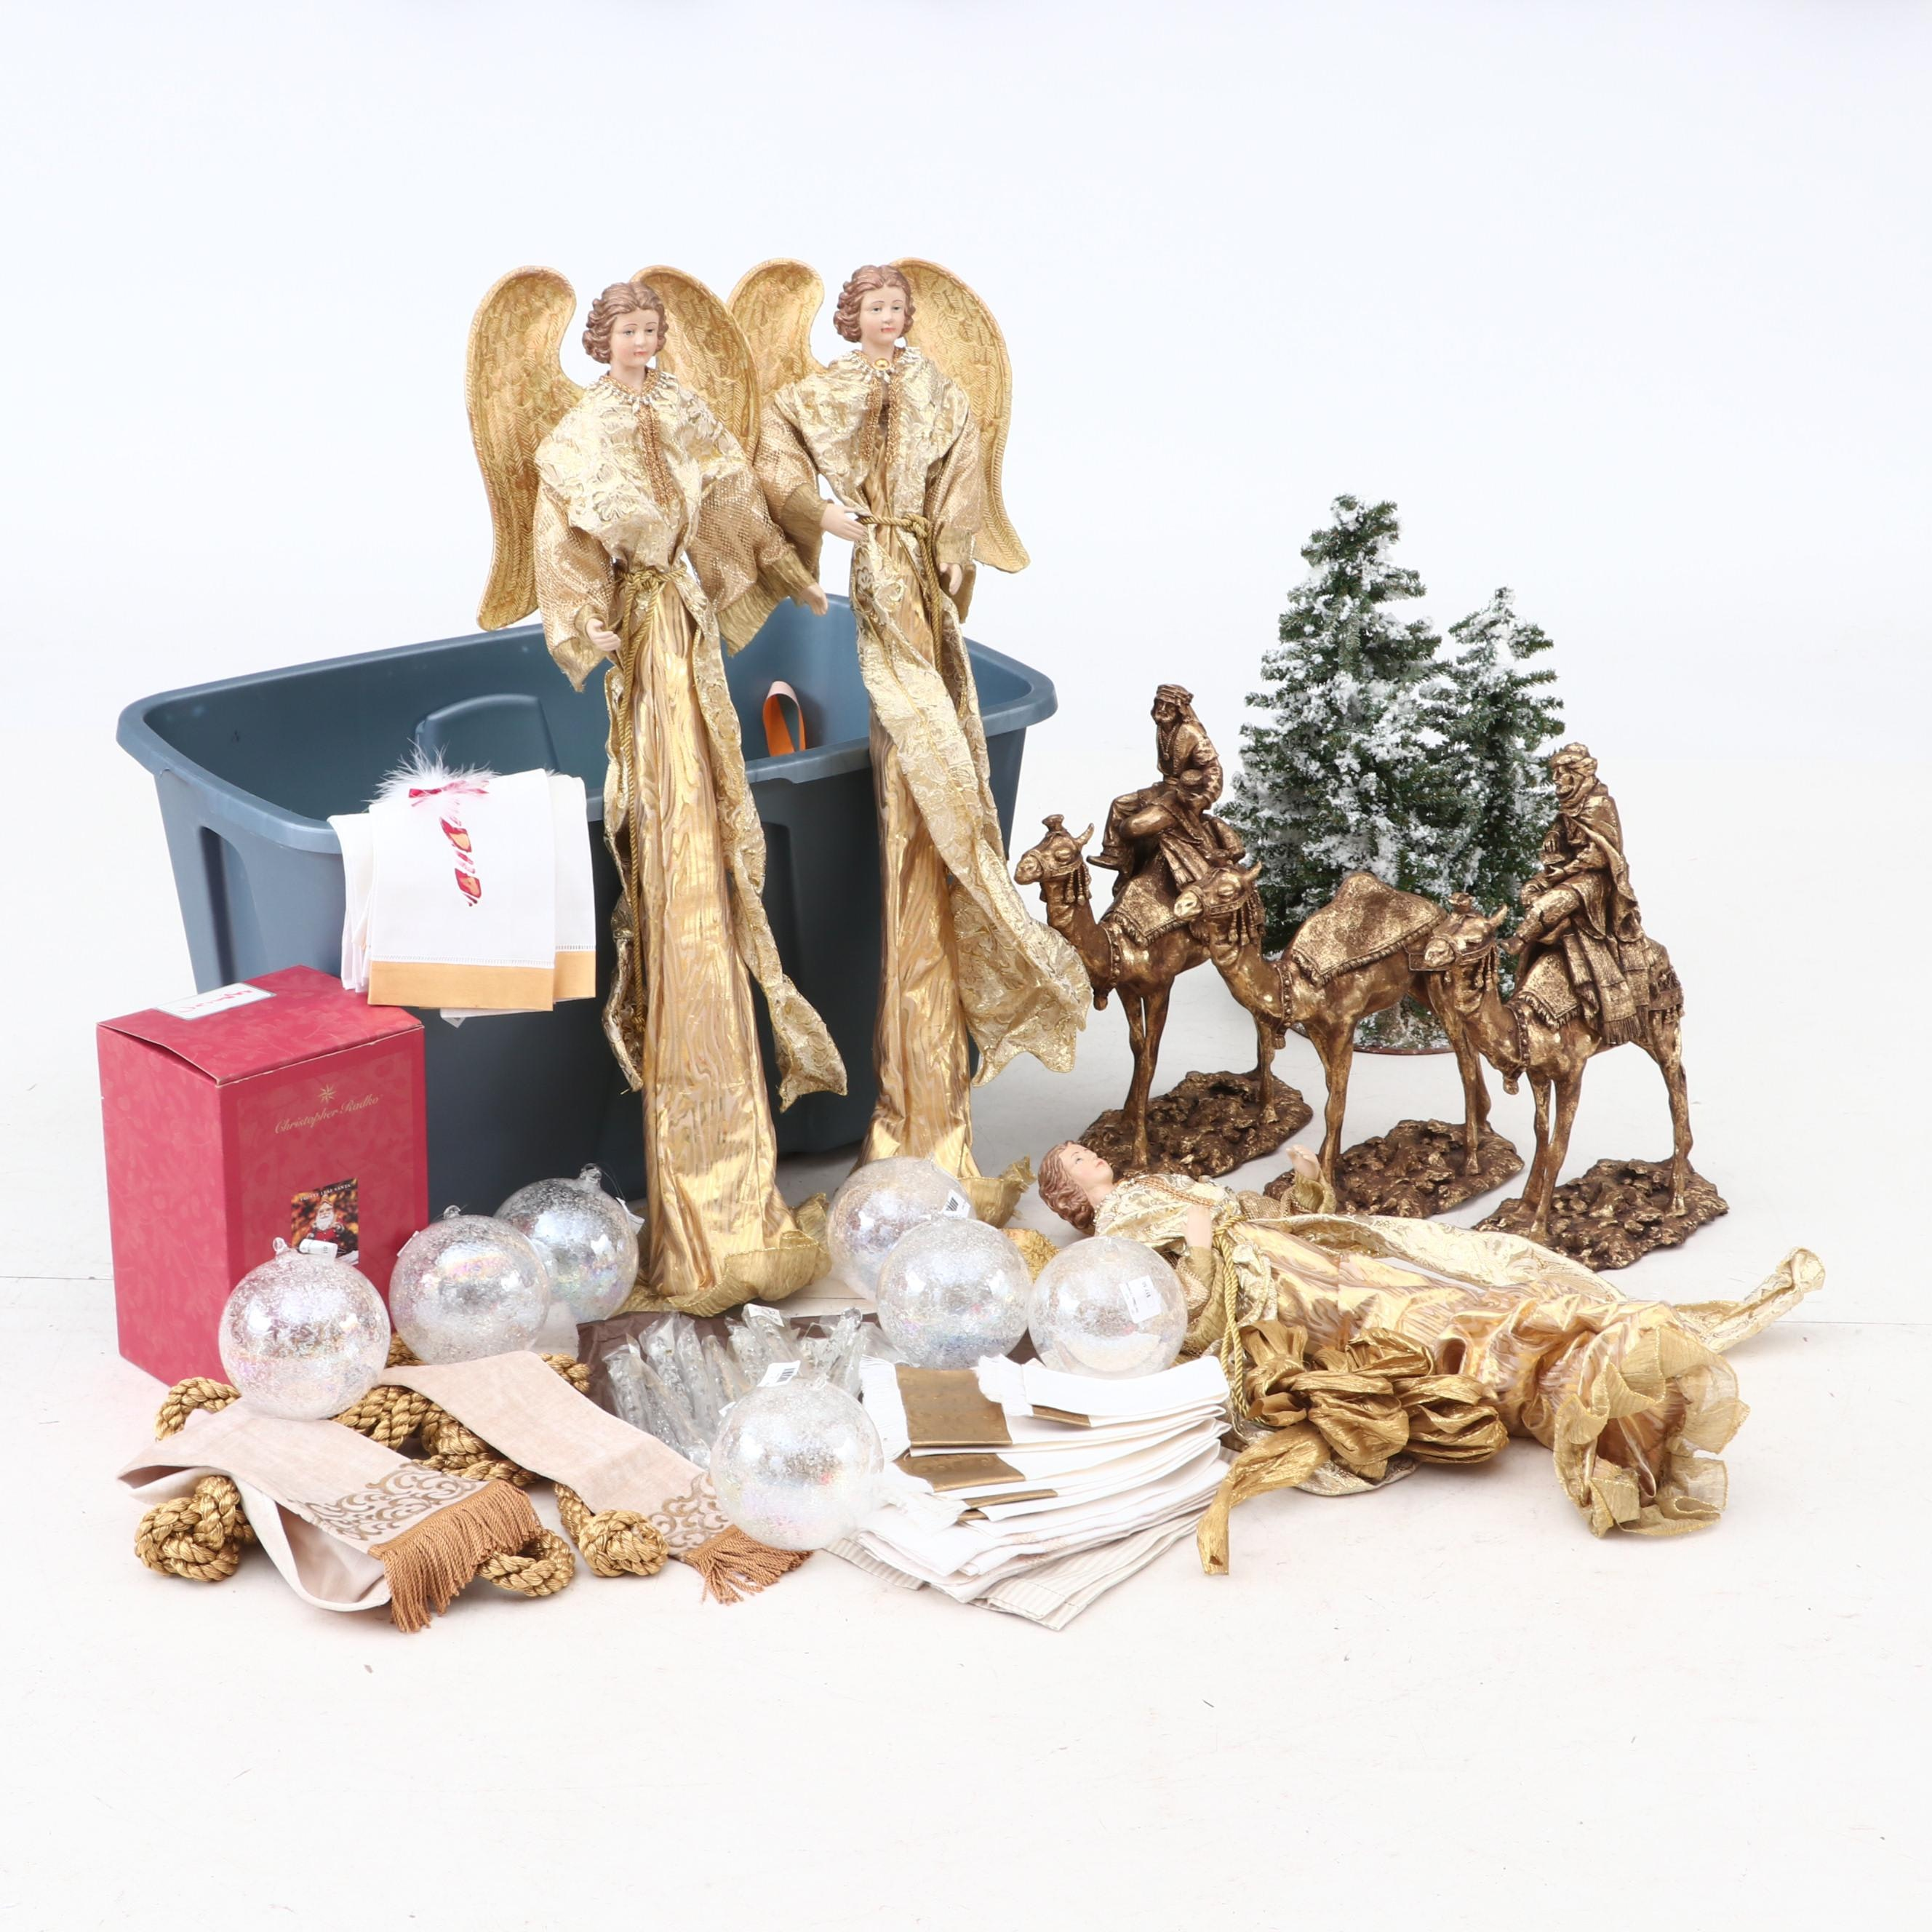 Holiday Decor, Figurines, and Ornaments